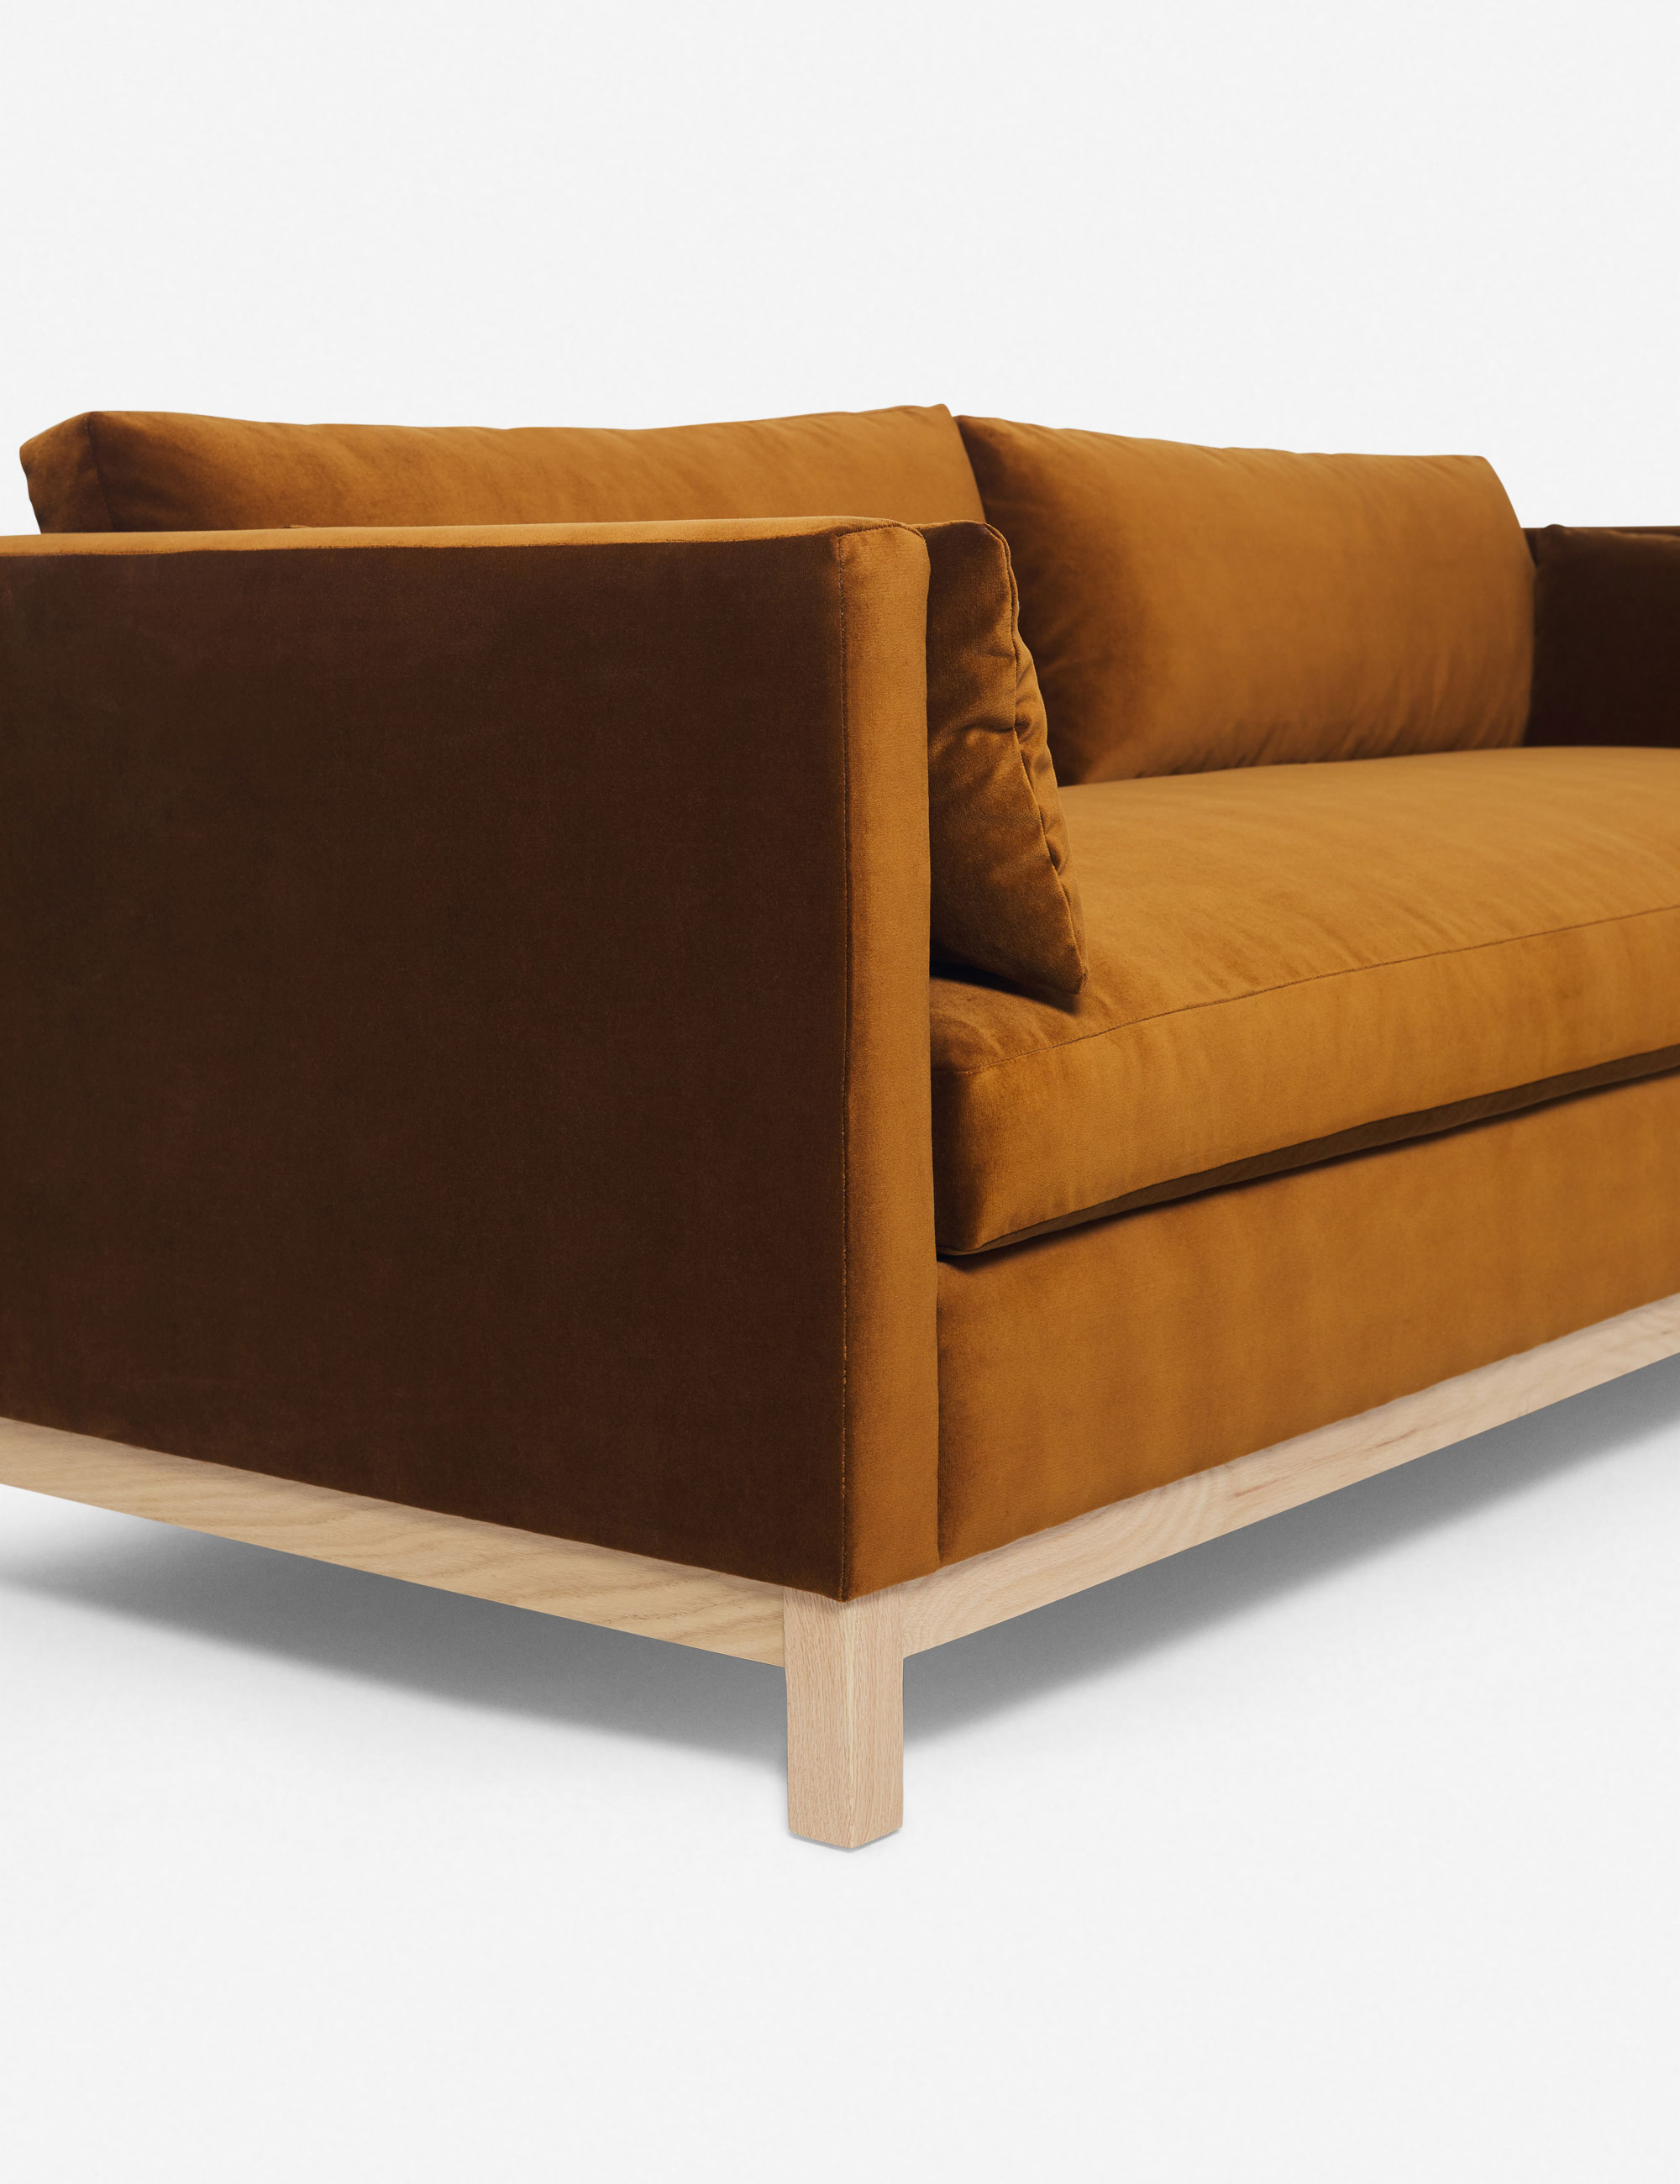 GINNY_MACDONALD_Hollingworth Sofa-Velvet-Cognac